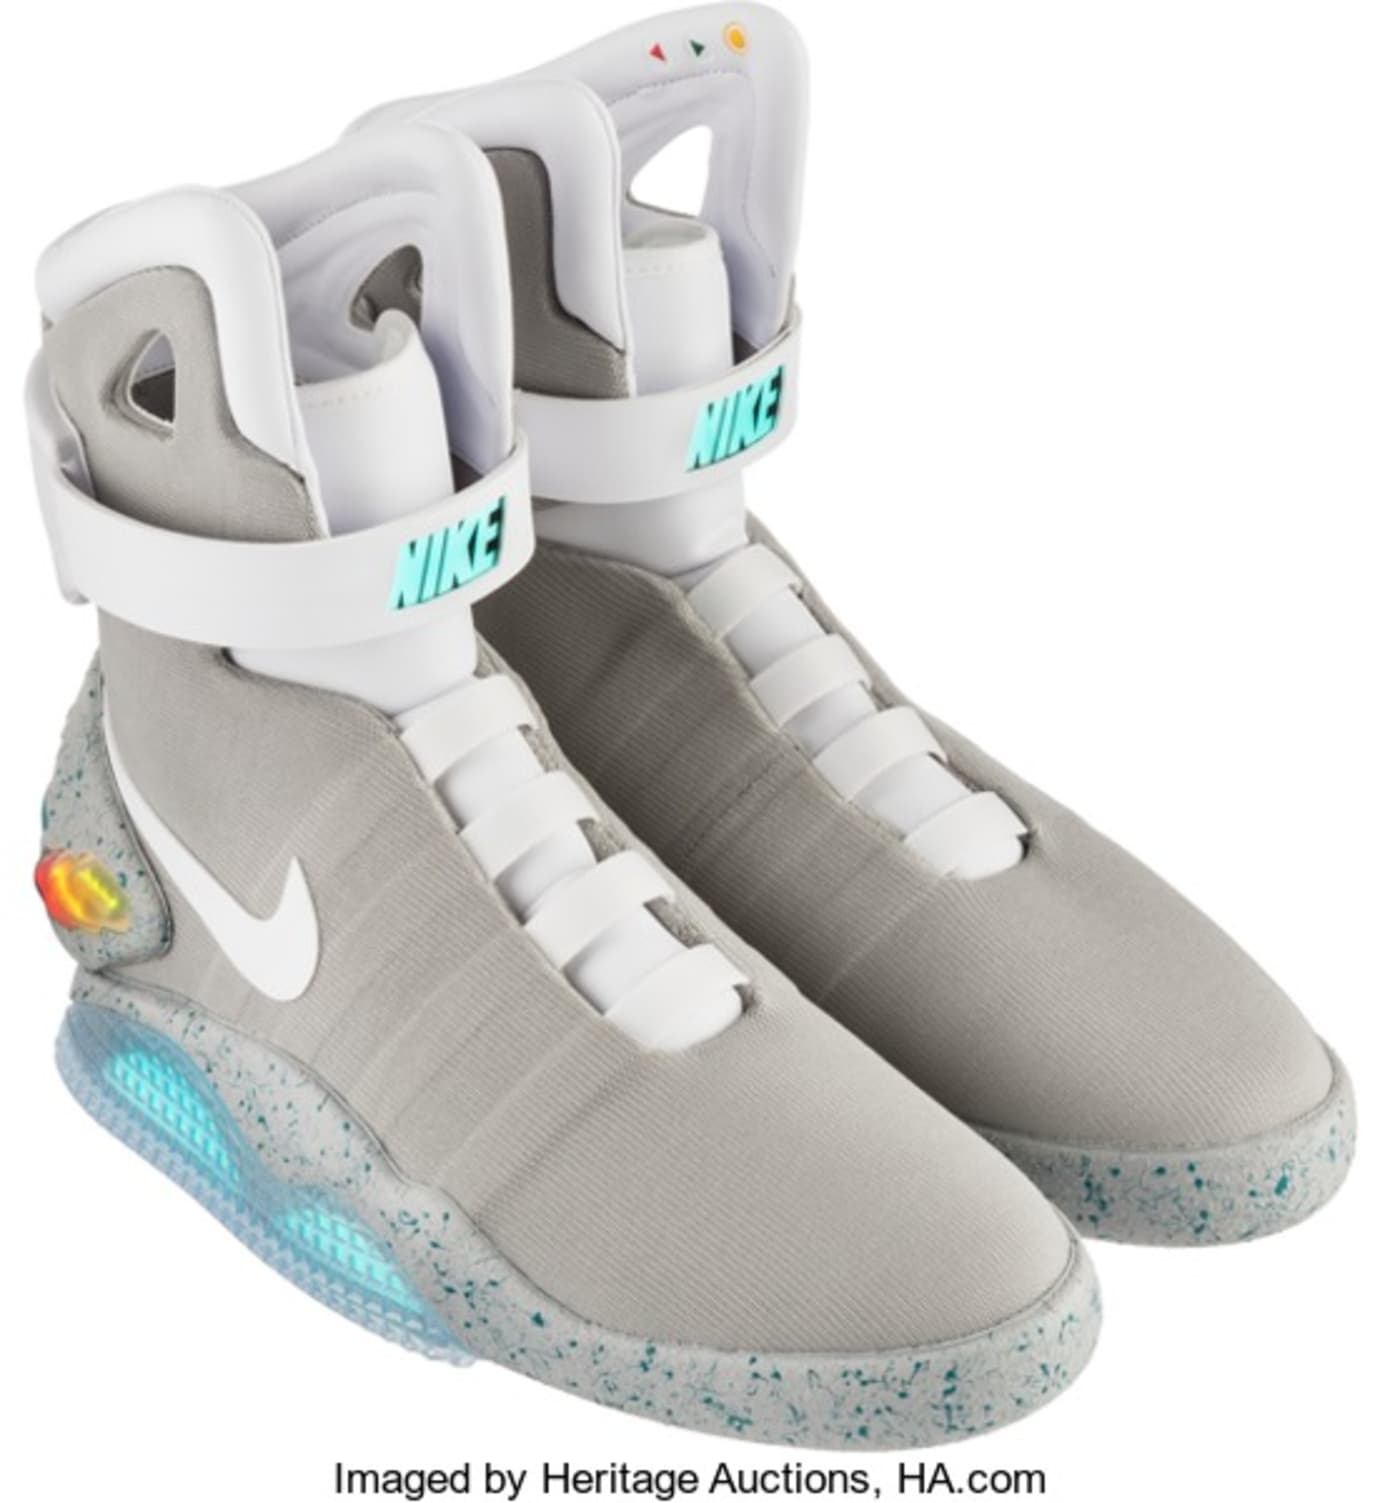 New Set Auction Air Mags RecordSole Collector XZPkiOuTw